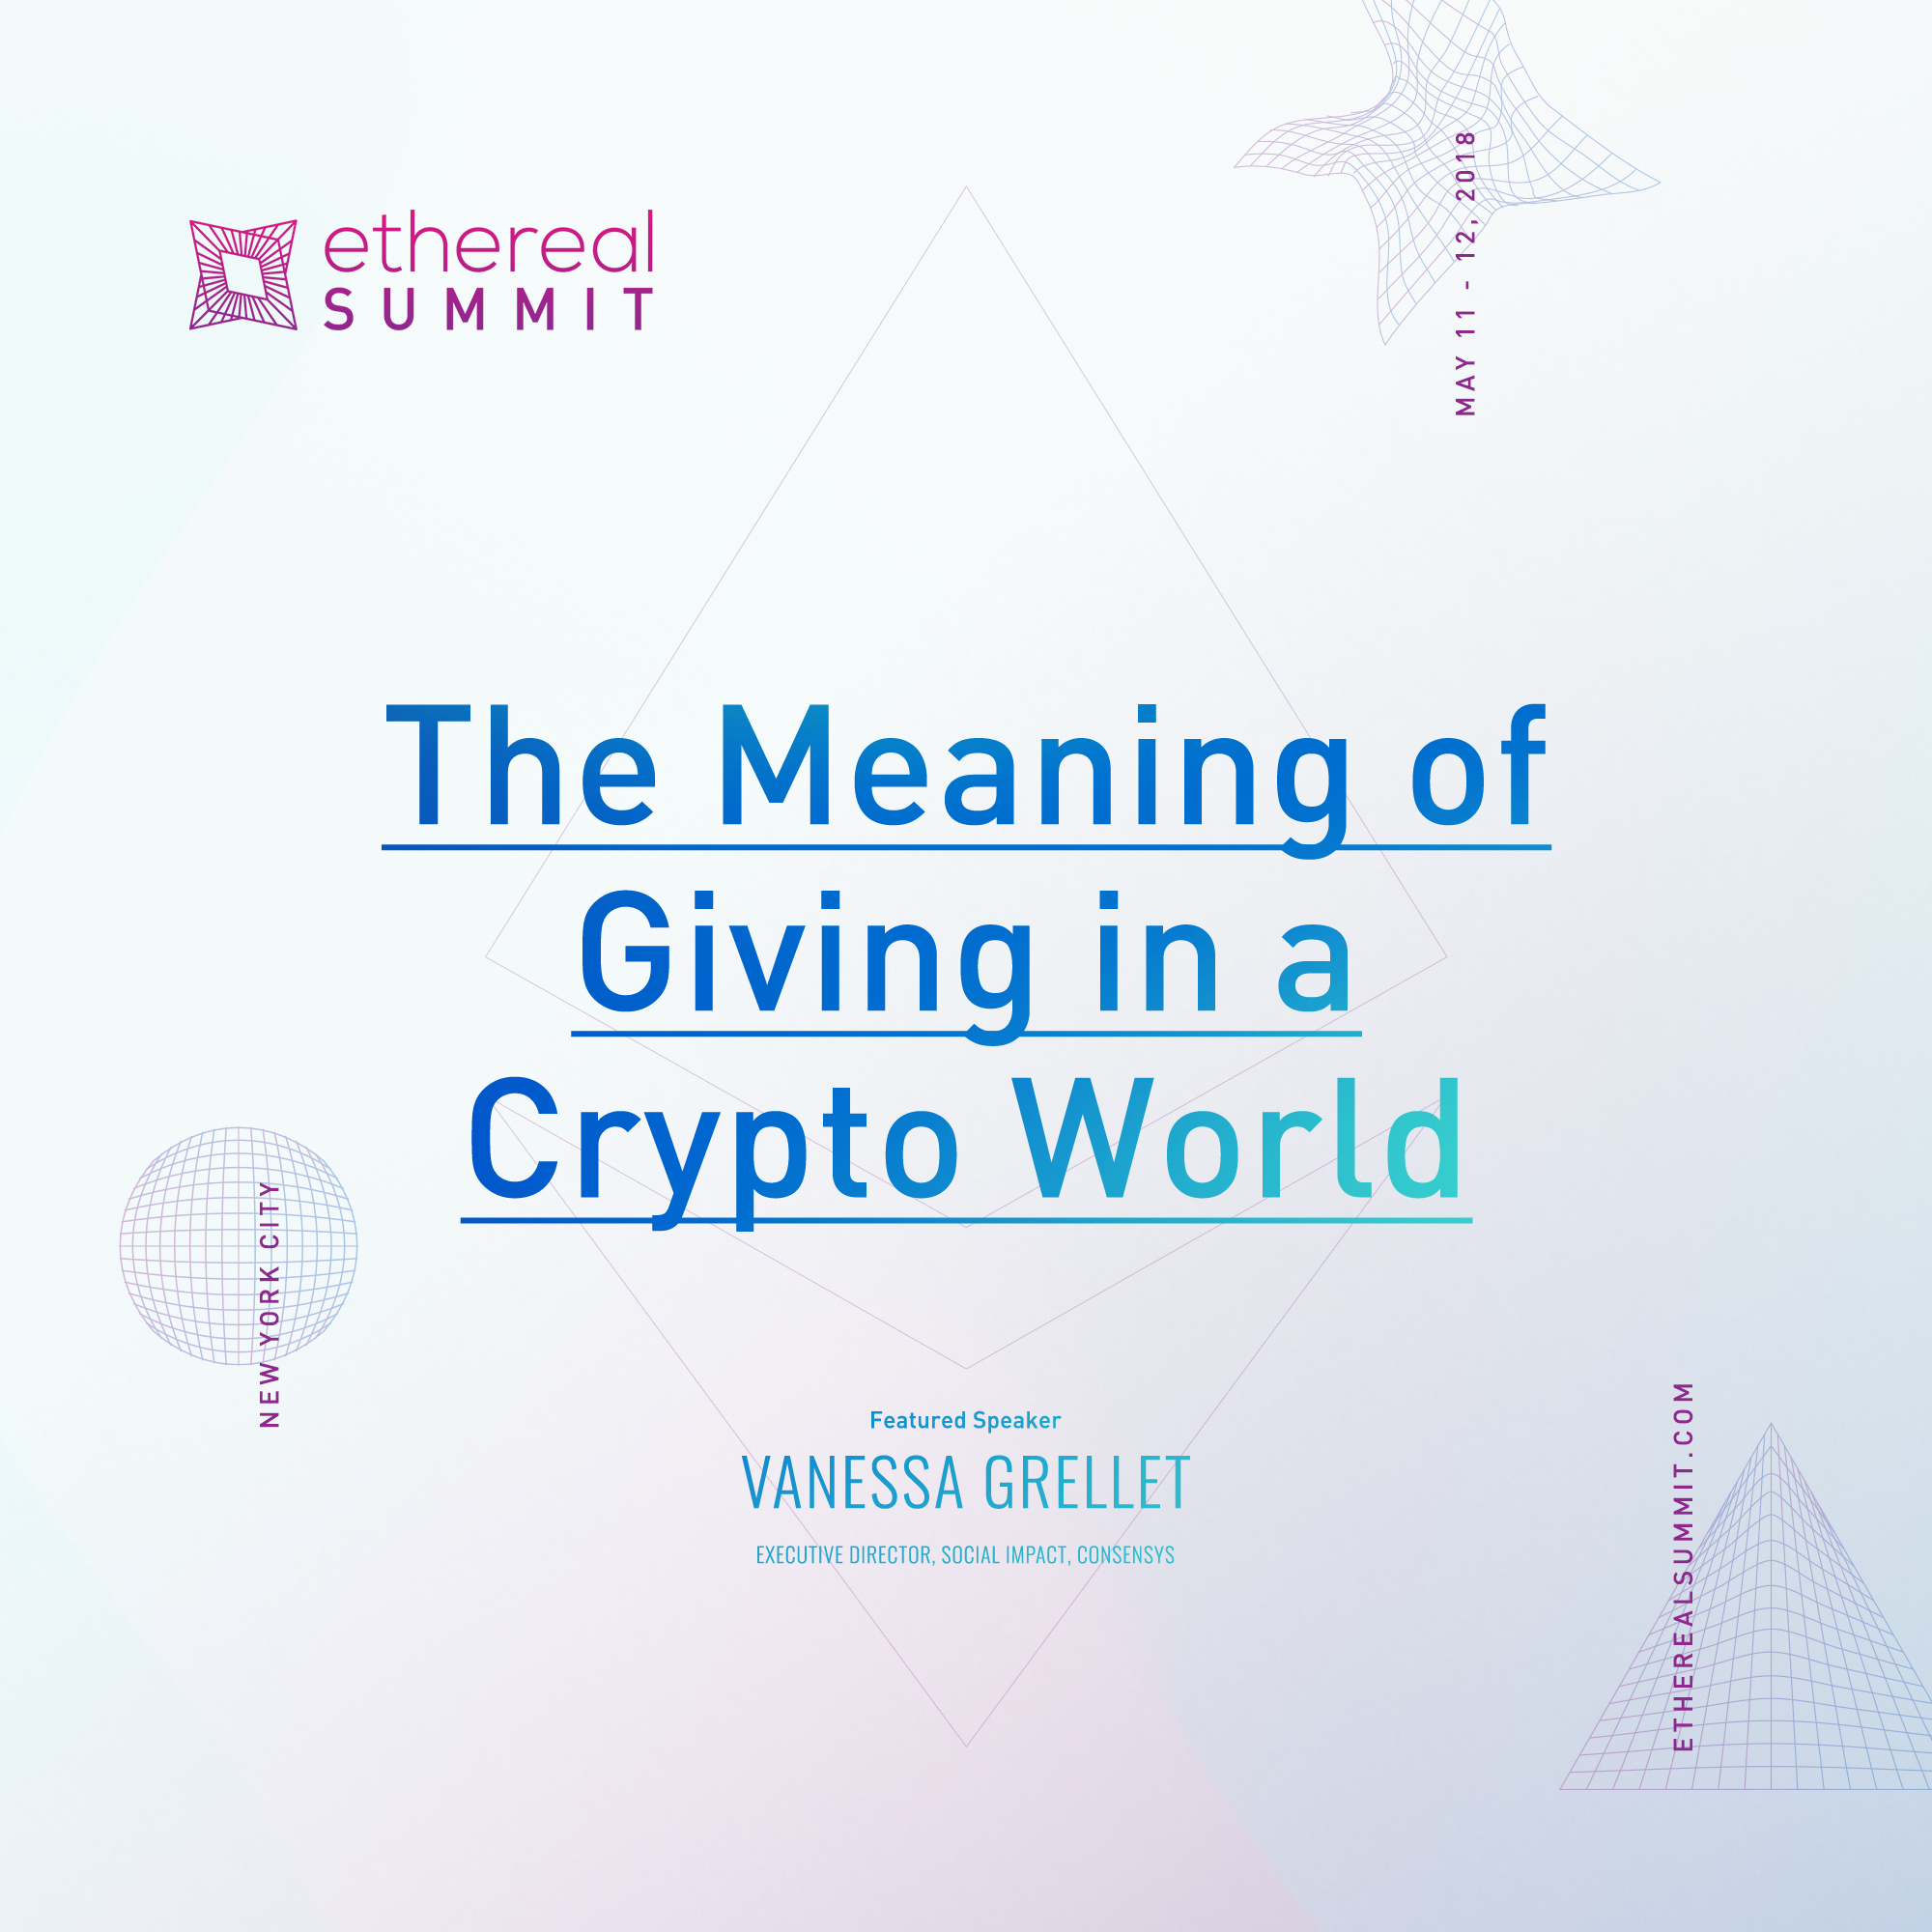 The Meaning of Giving in a Crypto World